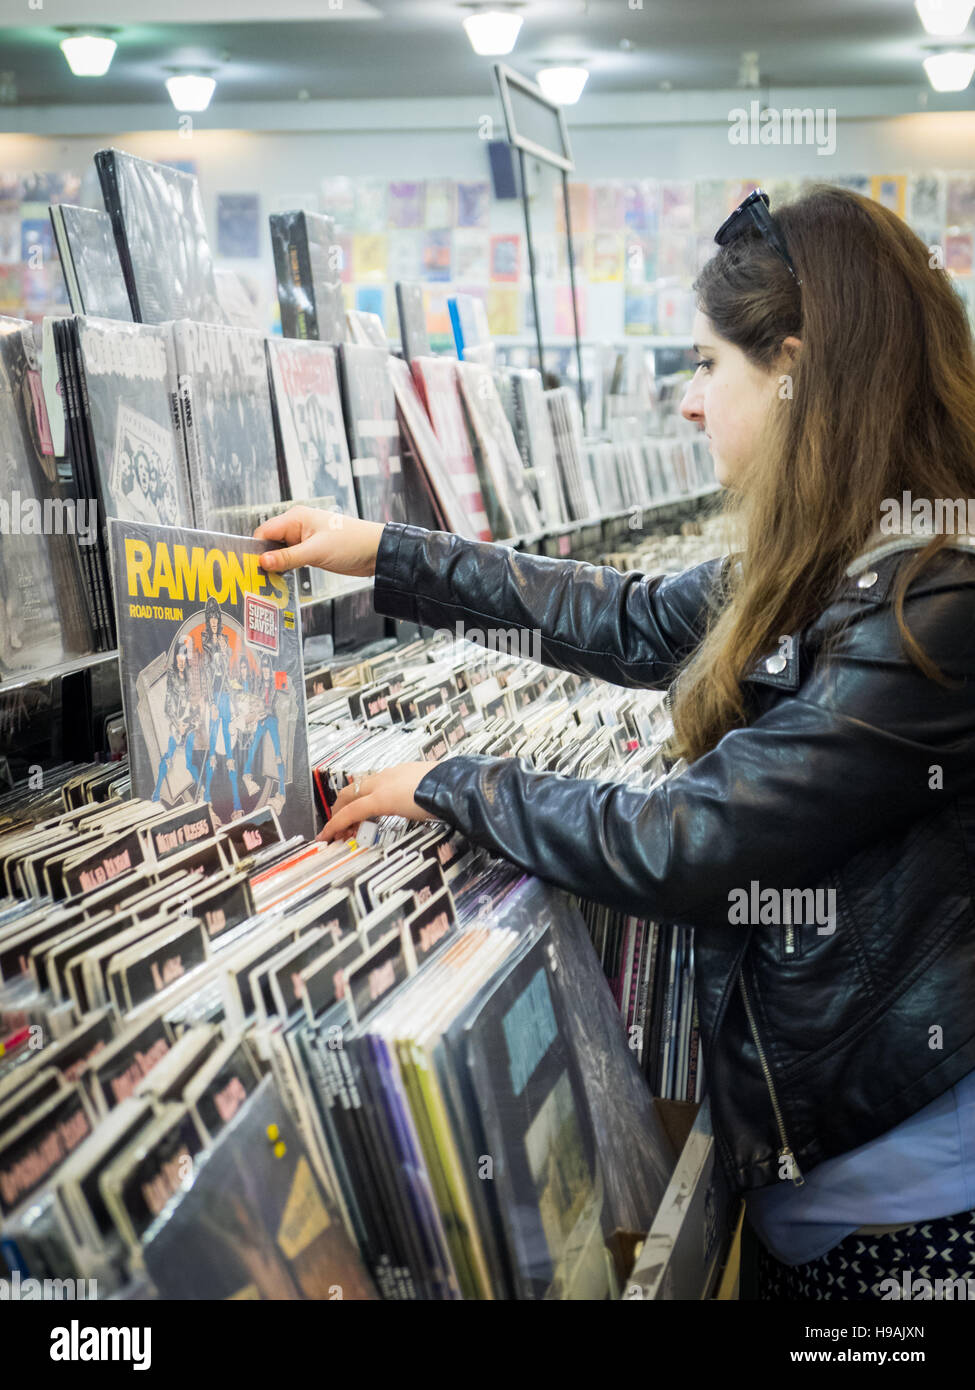 A pretty brunette girl searches for Ramones record albums at Amoeba Music (Amoeba Records) in San Francisco, California. - Stock Image